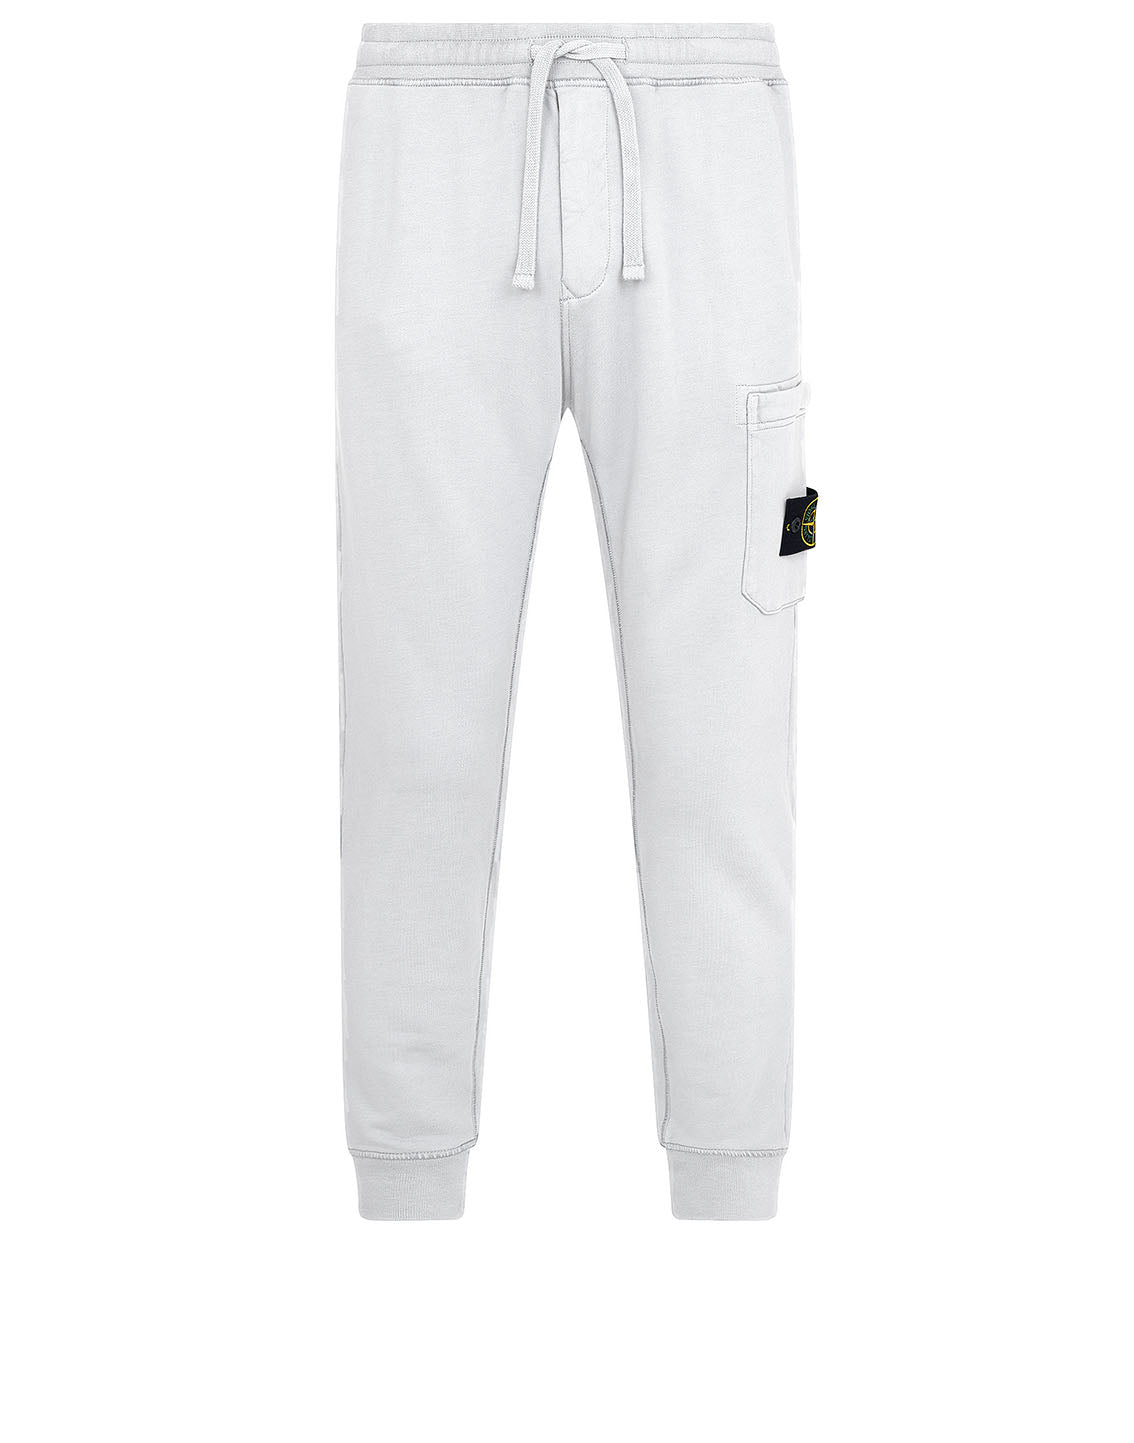 64551 Fleece Pants in White